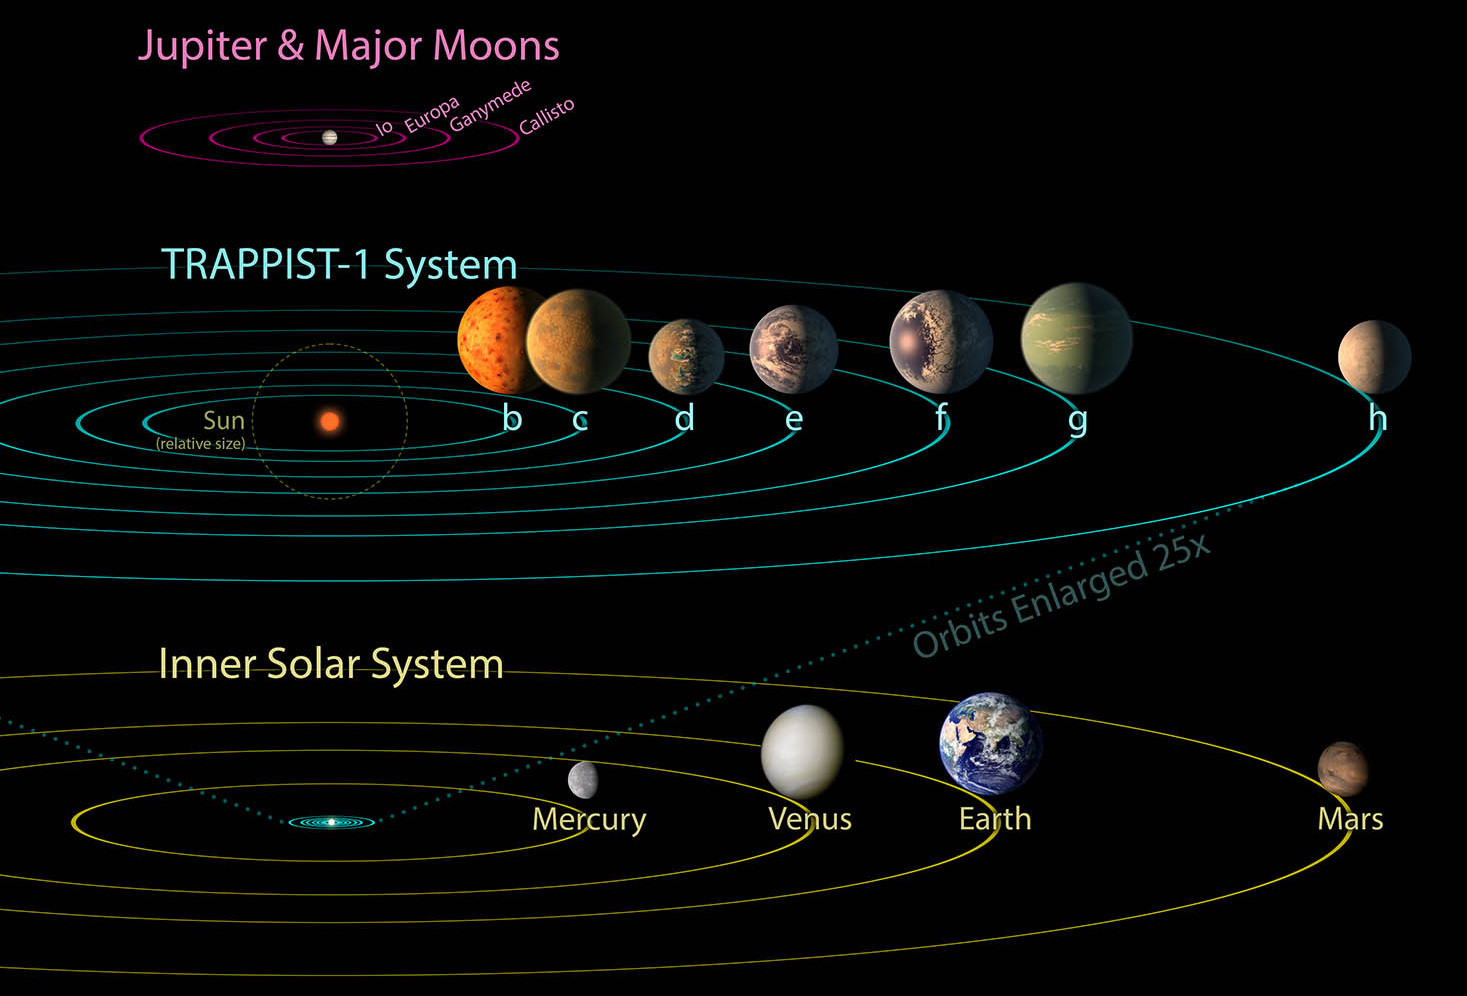 trappist1 system